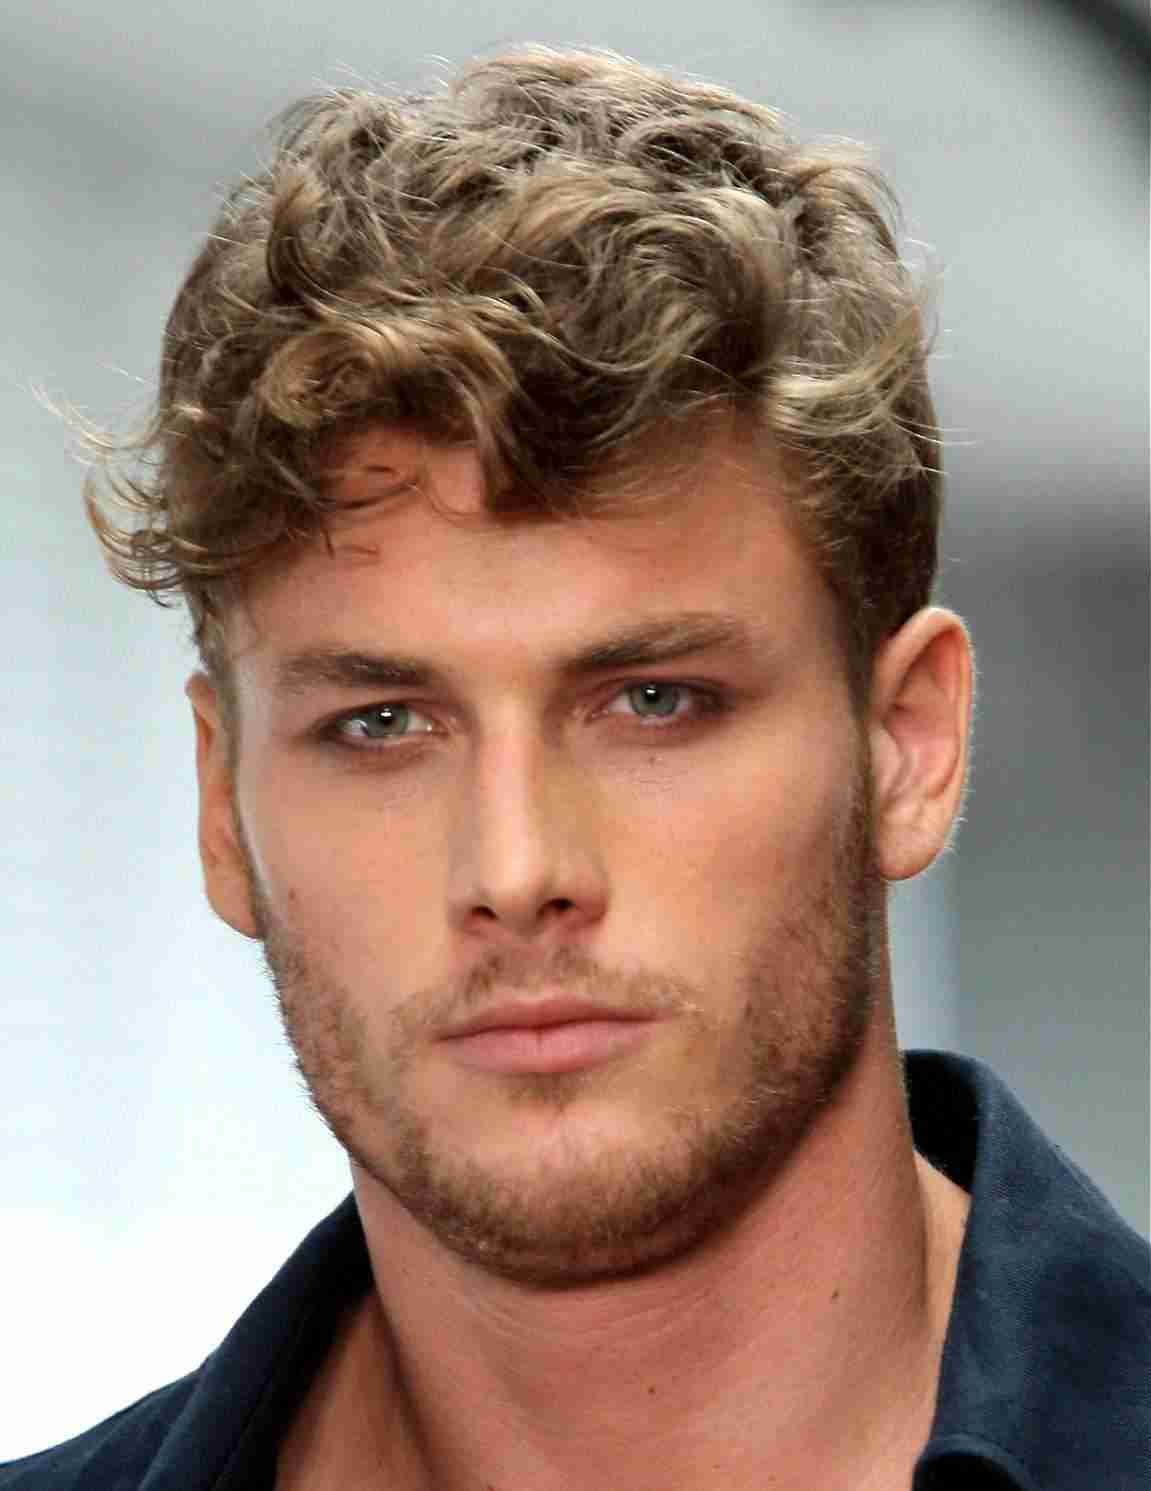 Haircuts for curly hair men